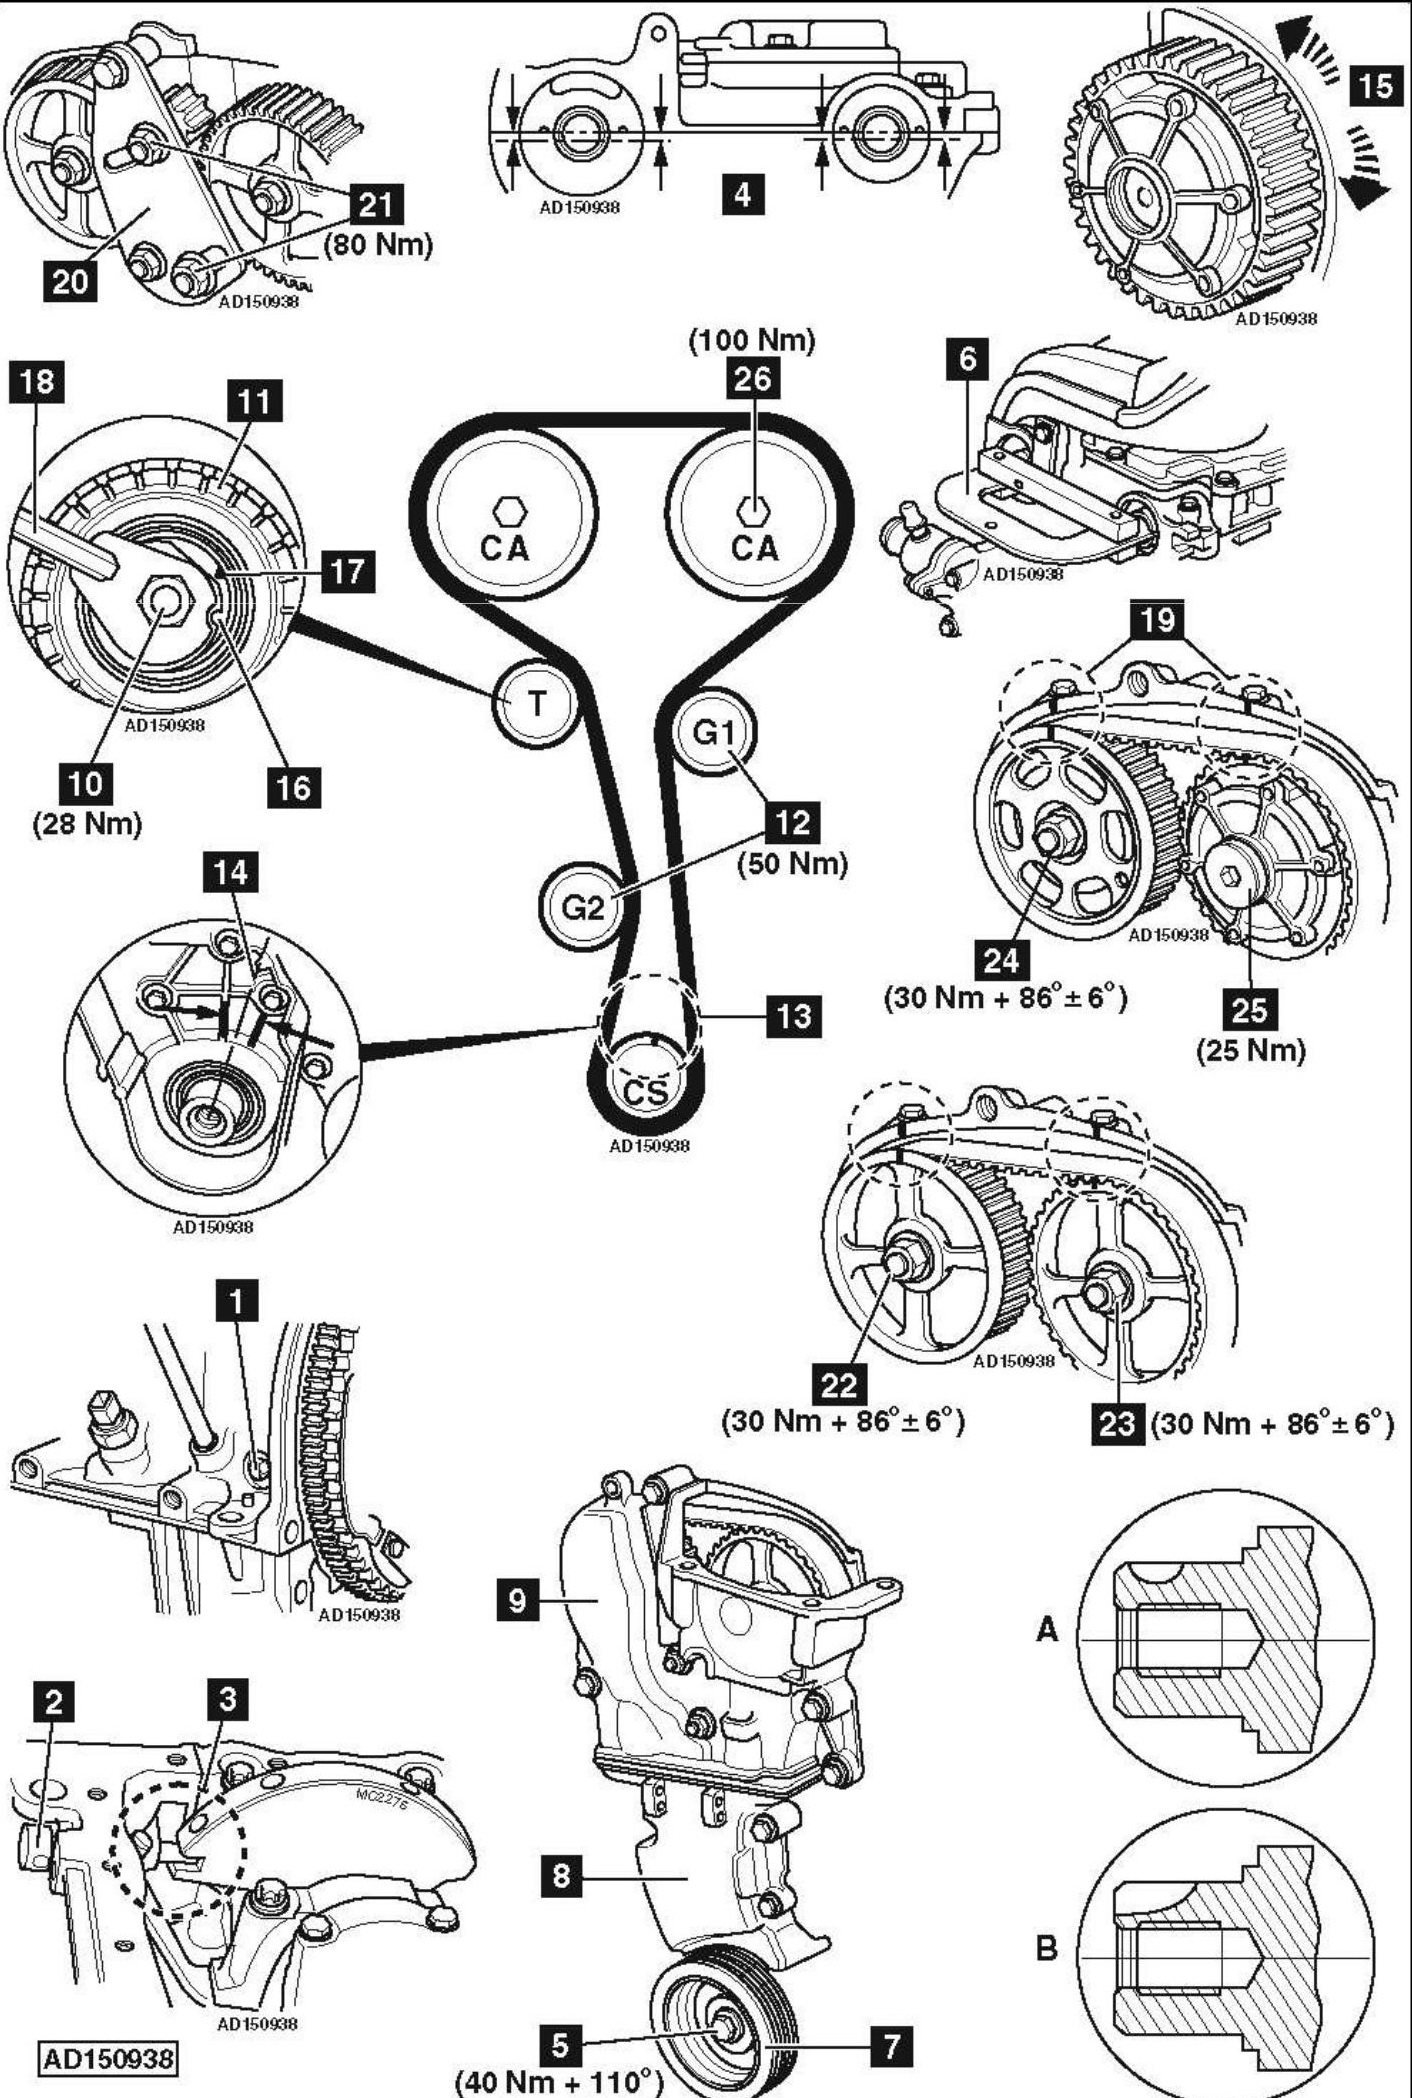 hight resolution of service manual how to replace timing belt on a 2001 94 mighty max flywheel diagram mitsubishi mighty max transmission